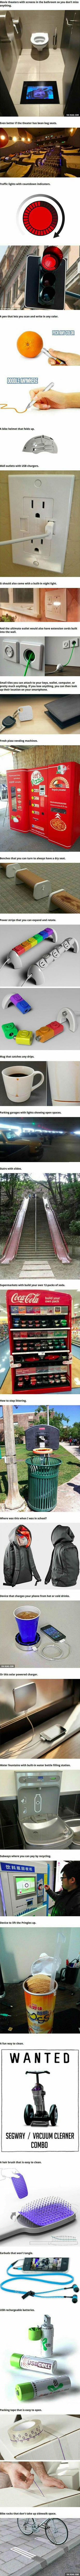 Awesome inventions                                                                                                                                                      More